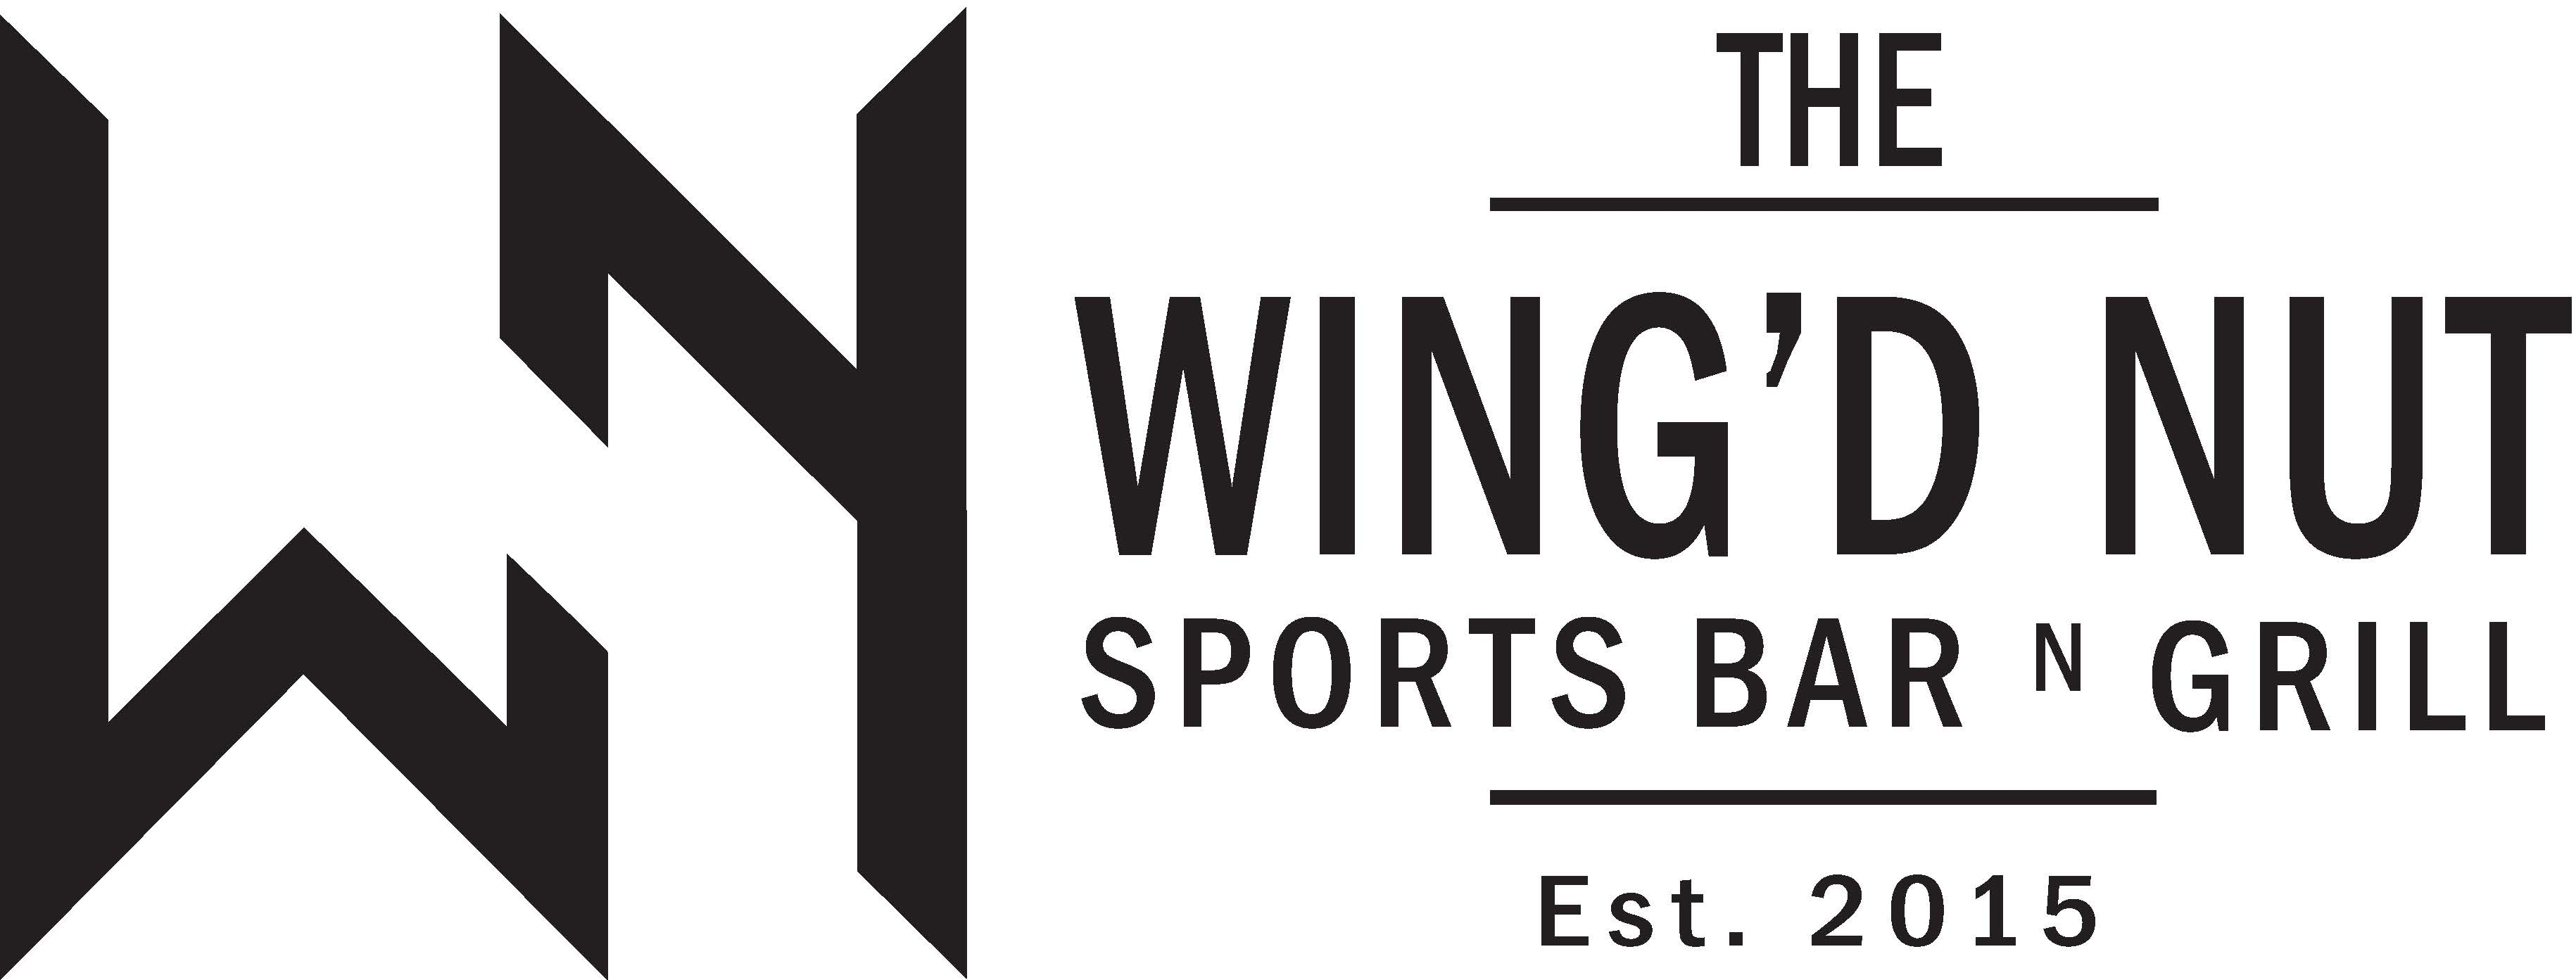 Wingd Nut Golf Flag Logo